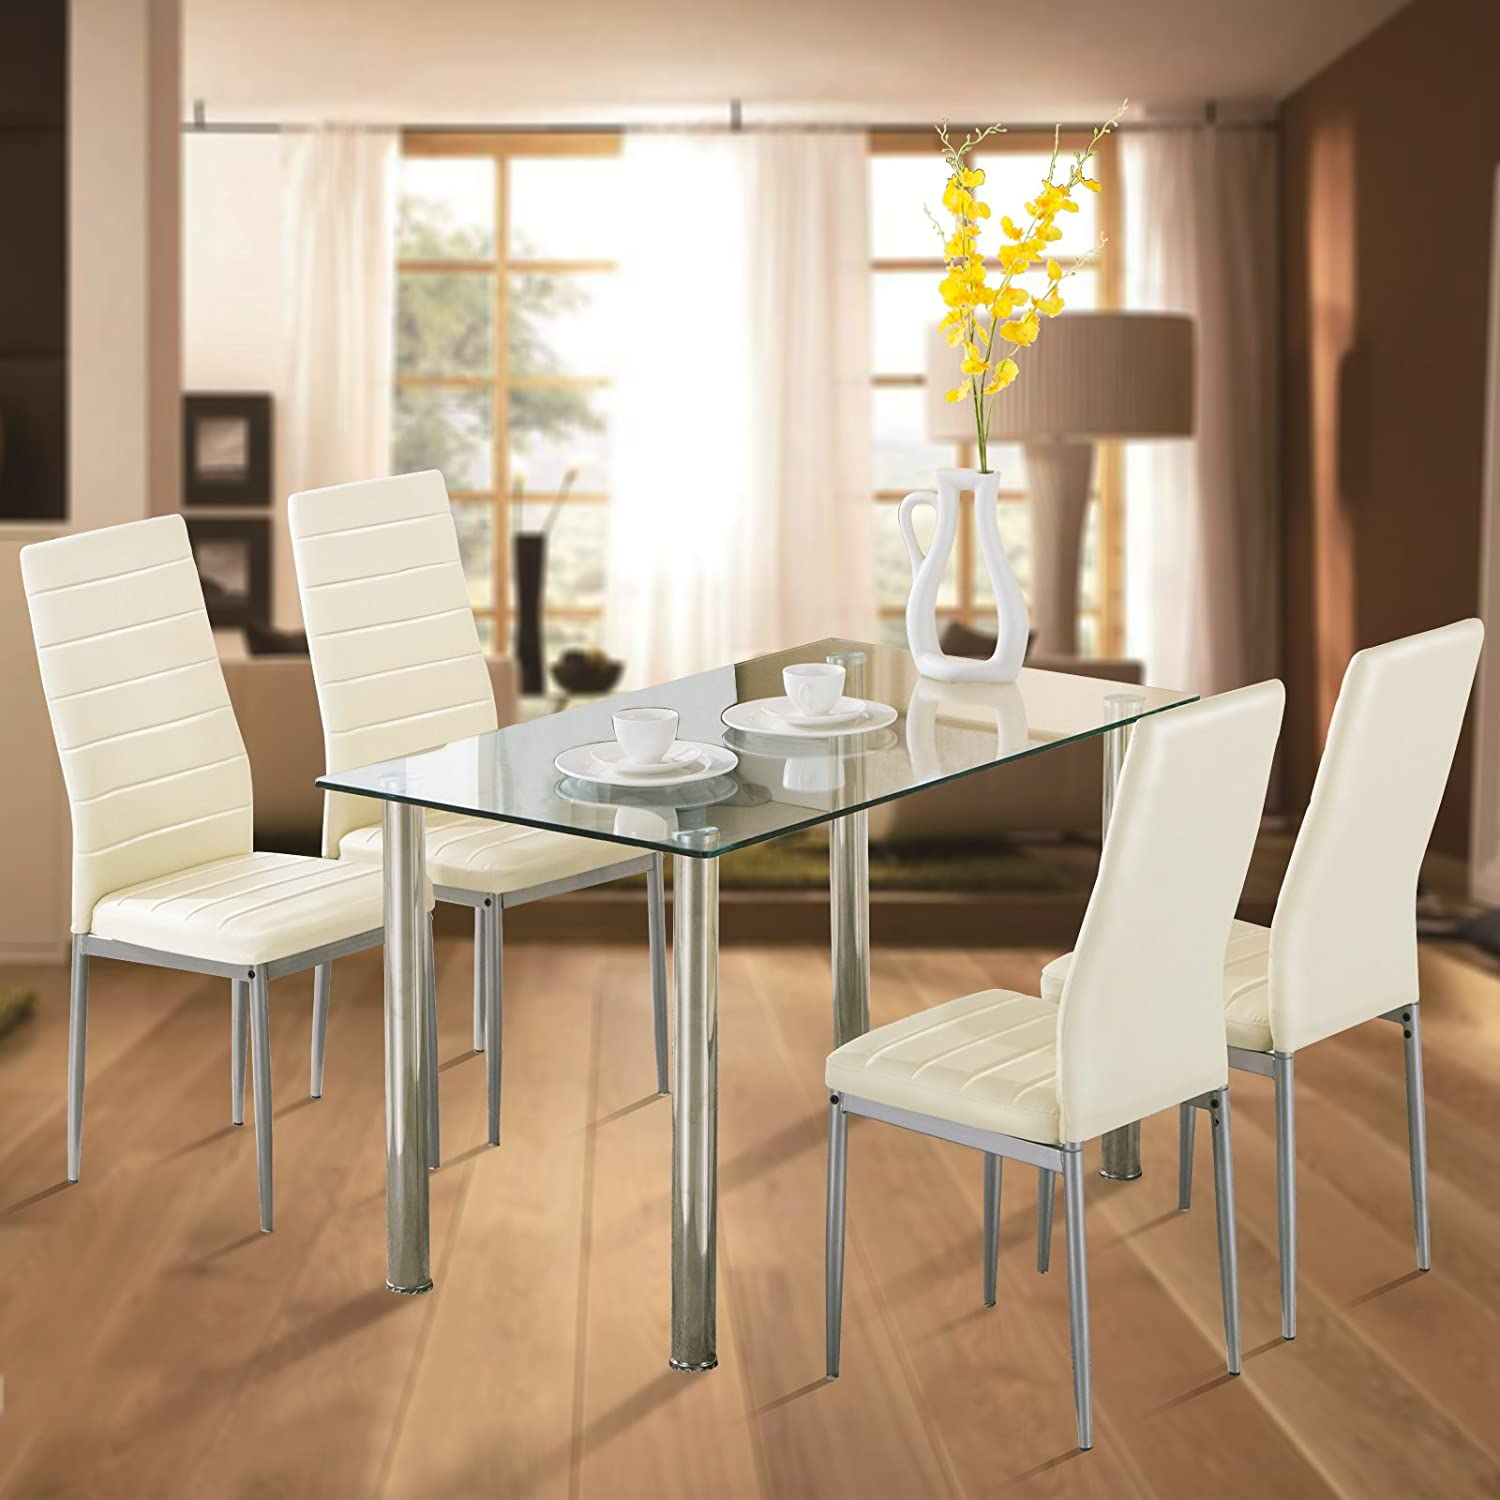 Amazon 5pc Glass Dining Table with 4 Chairs Set Glass Metal